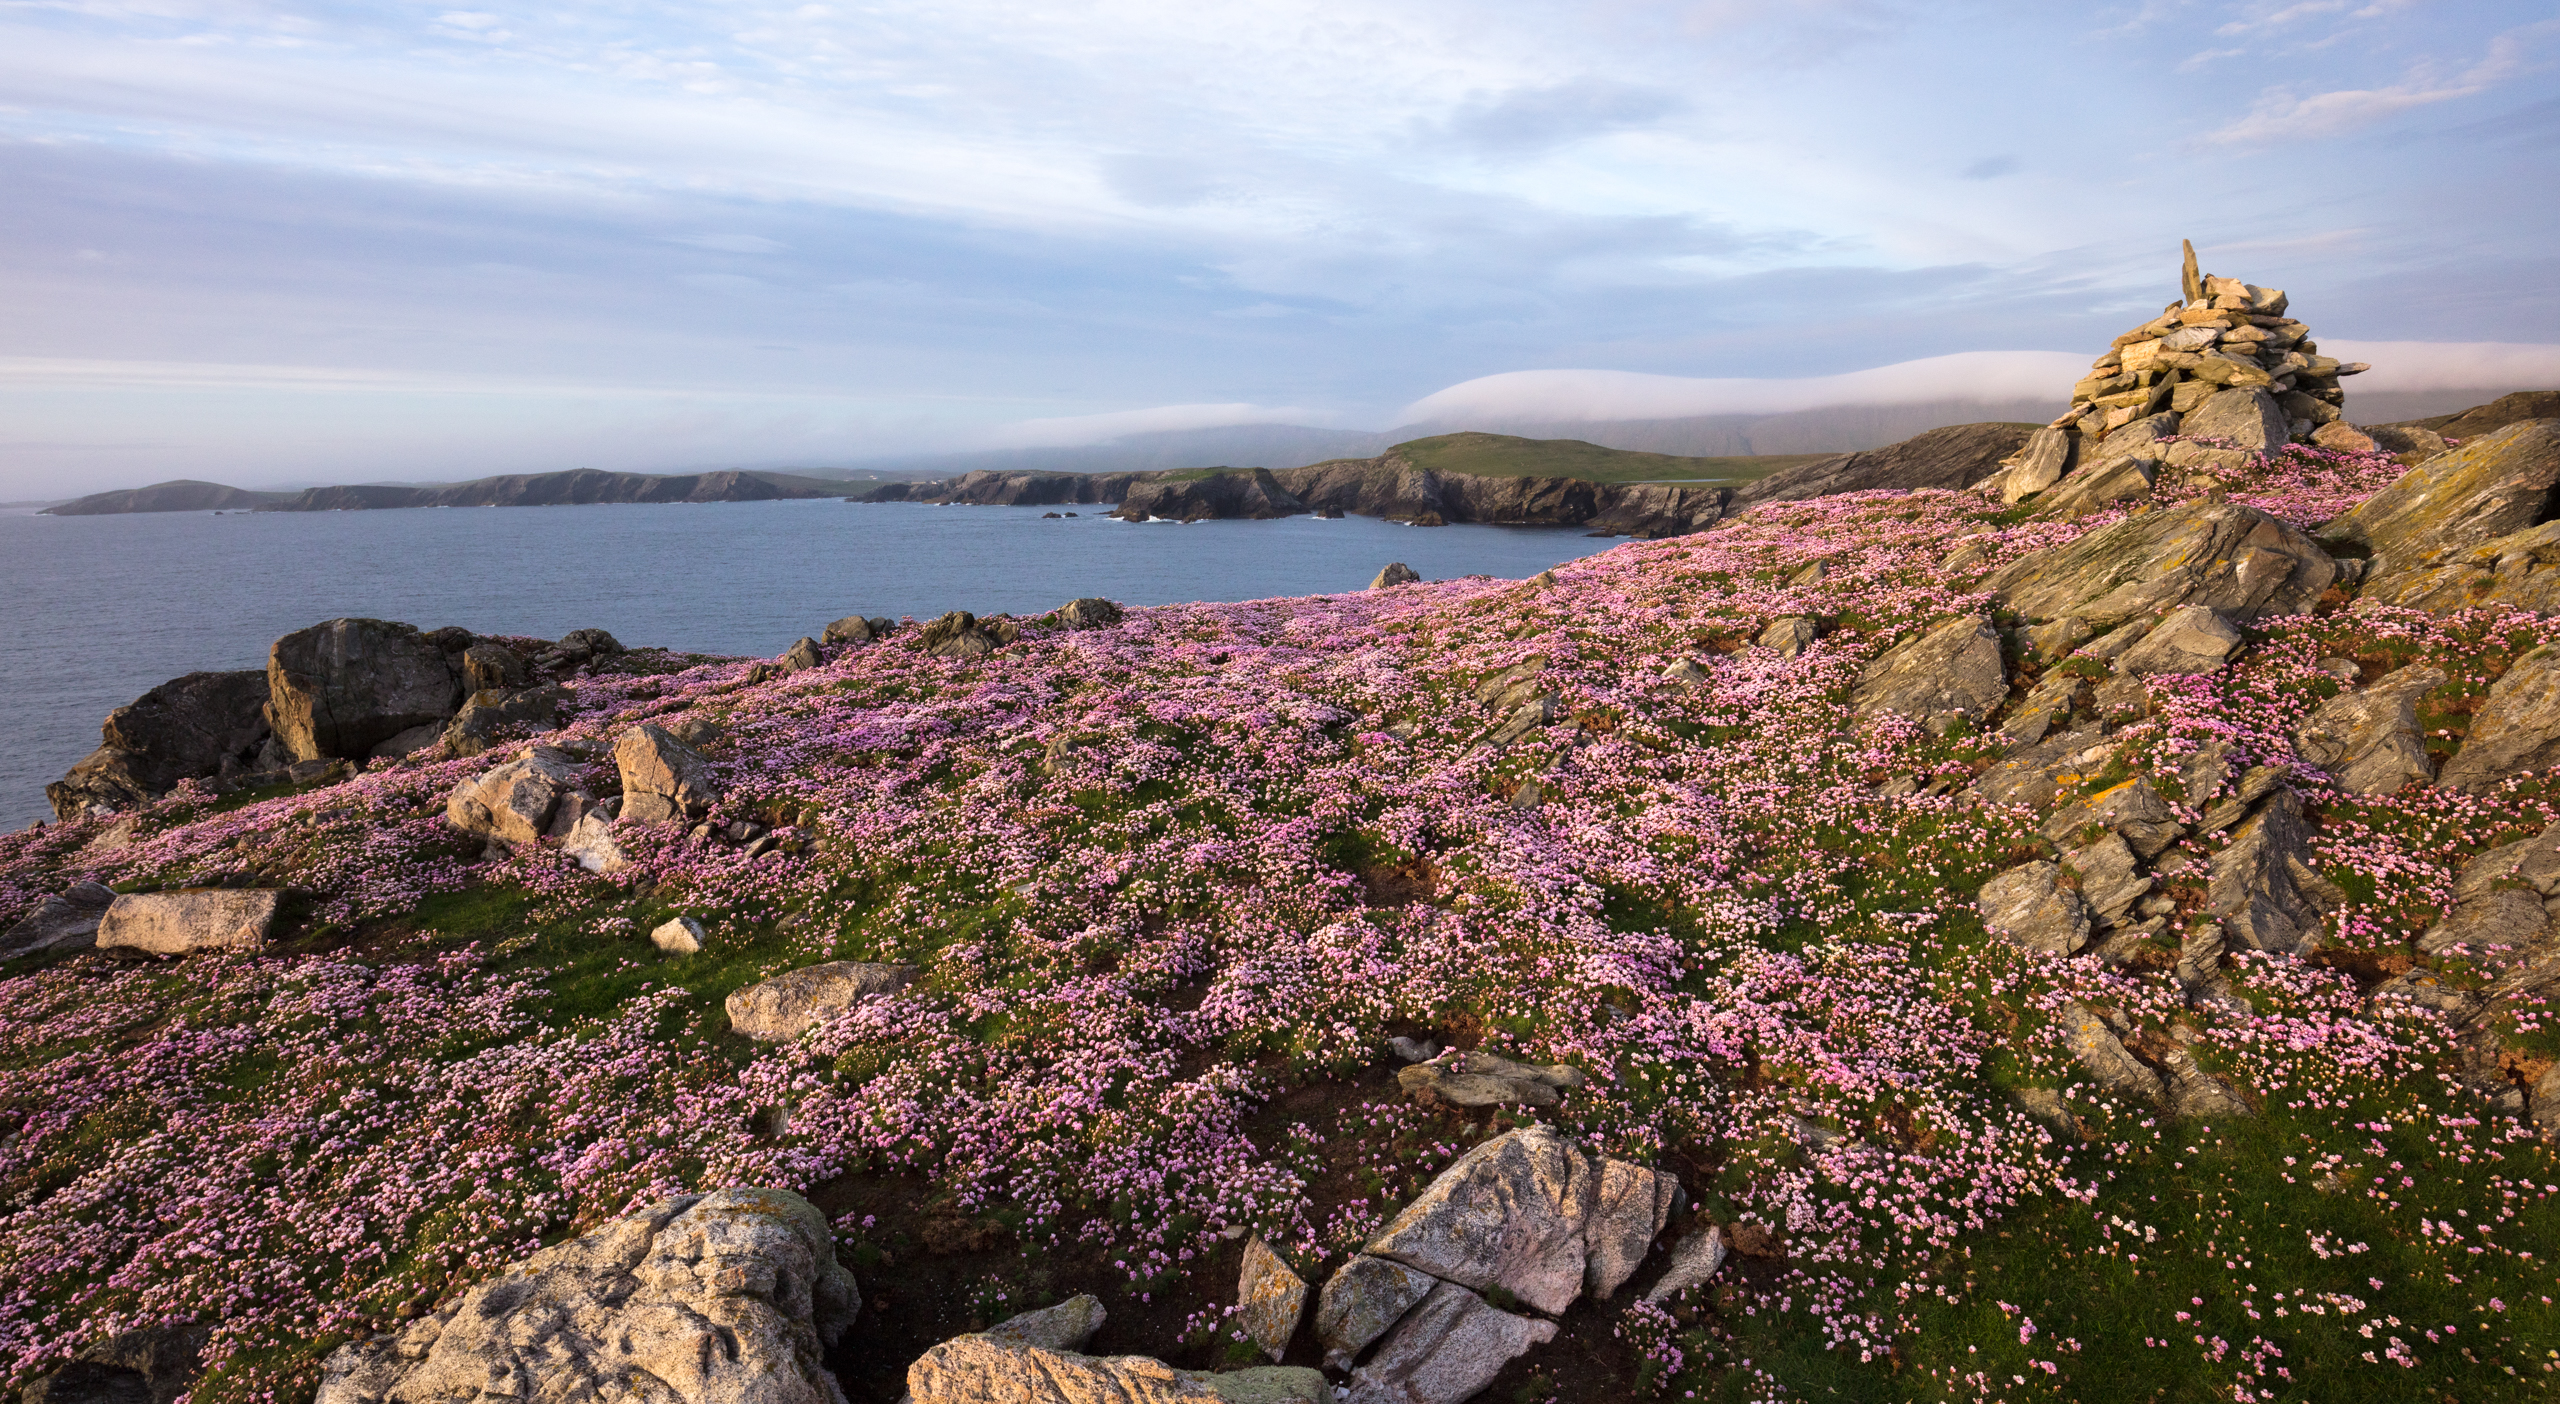 Sea Pinks are found on clifftops in late spring and early summer